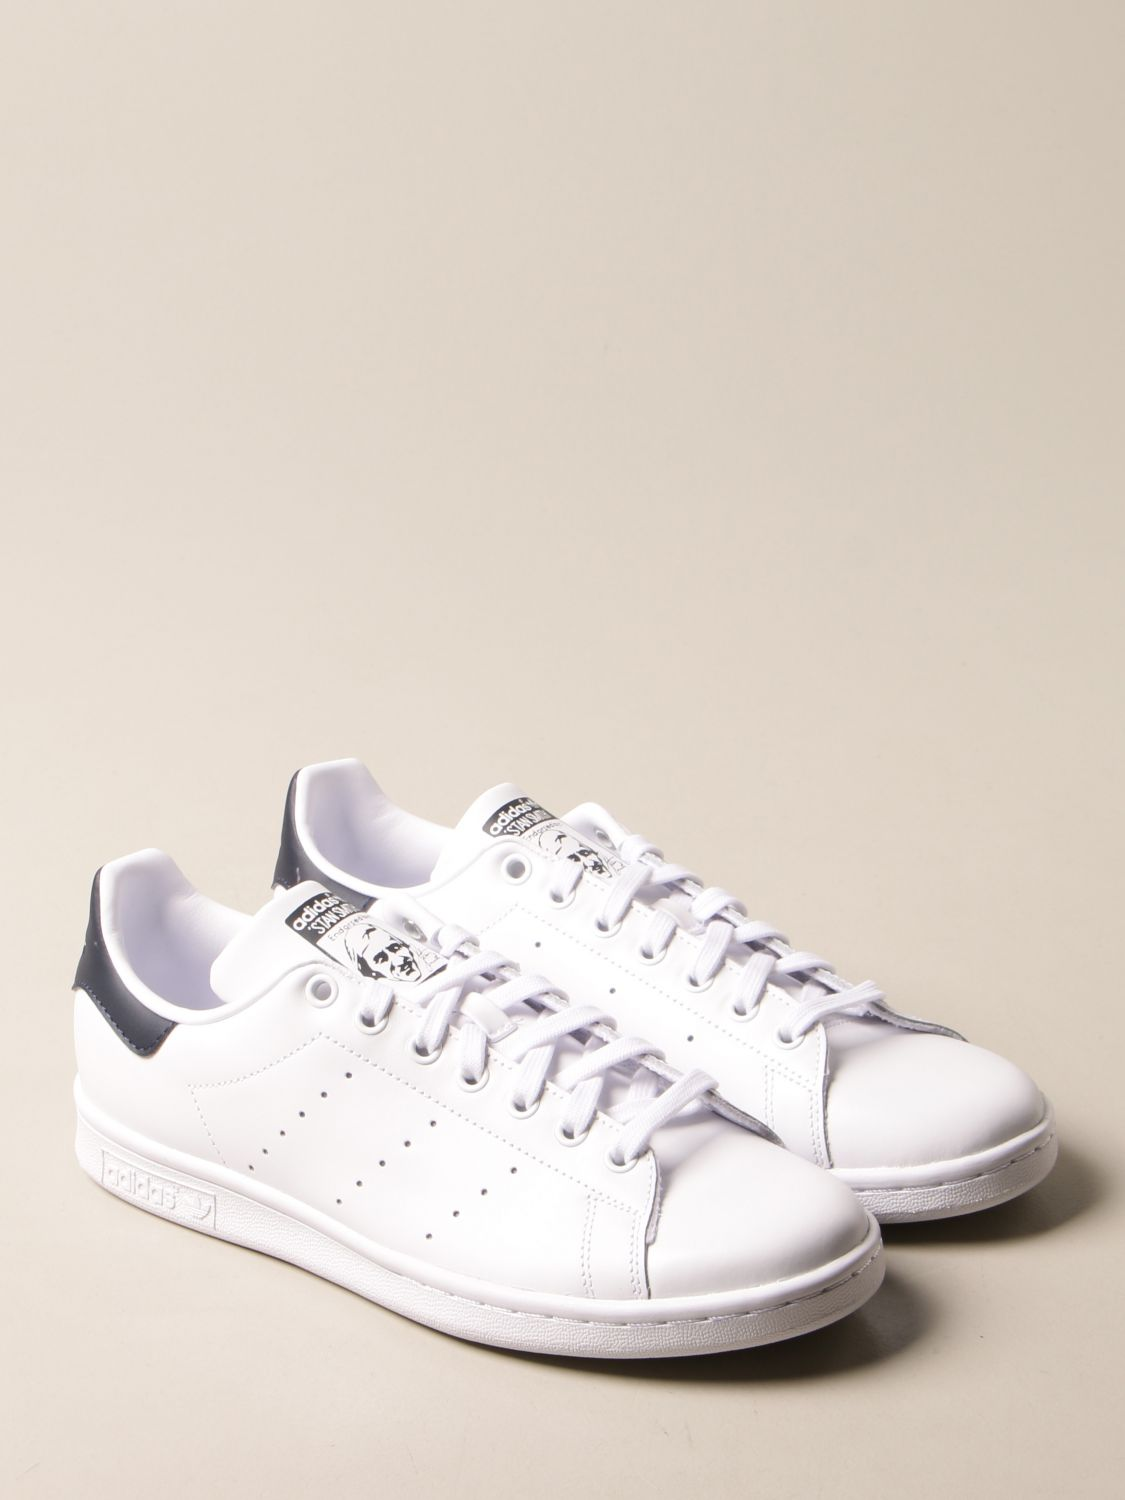 Trainers Adidas Originals: Stan Smith Adidas Originals leather sneakers white 2